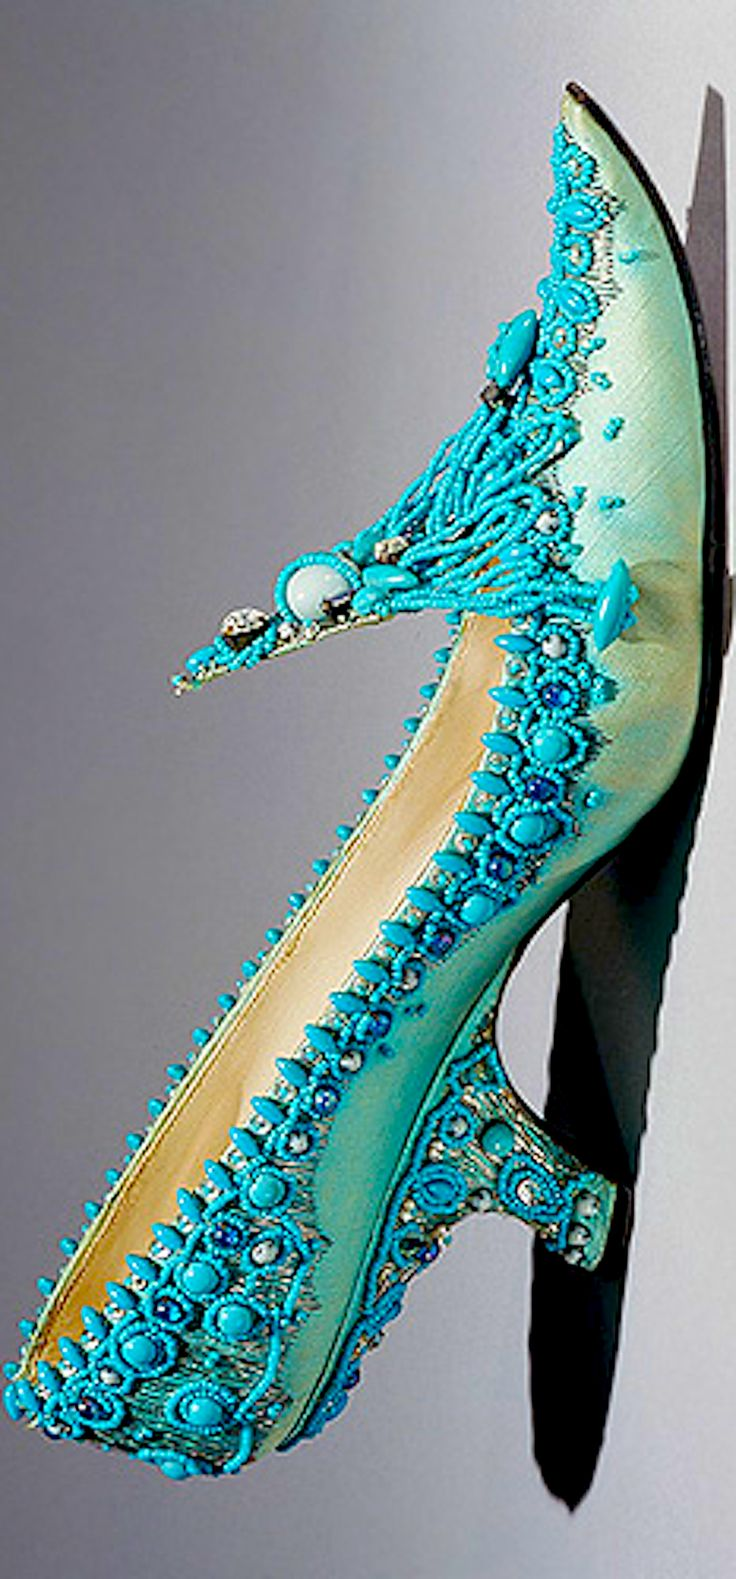 Evening Shoes by Roger Vivier 1961. Using the signature comma heel and embroidery of glass beads, rhinestones, and silver metallic thread on aqua satin to create an exquisite piece